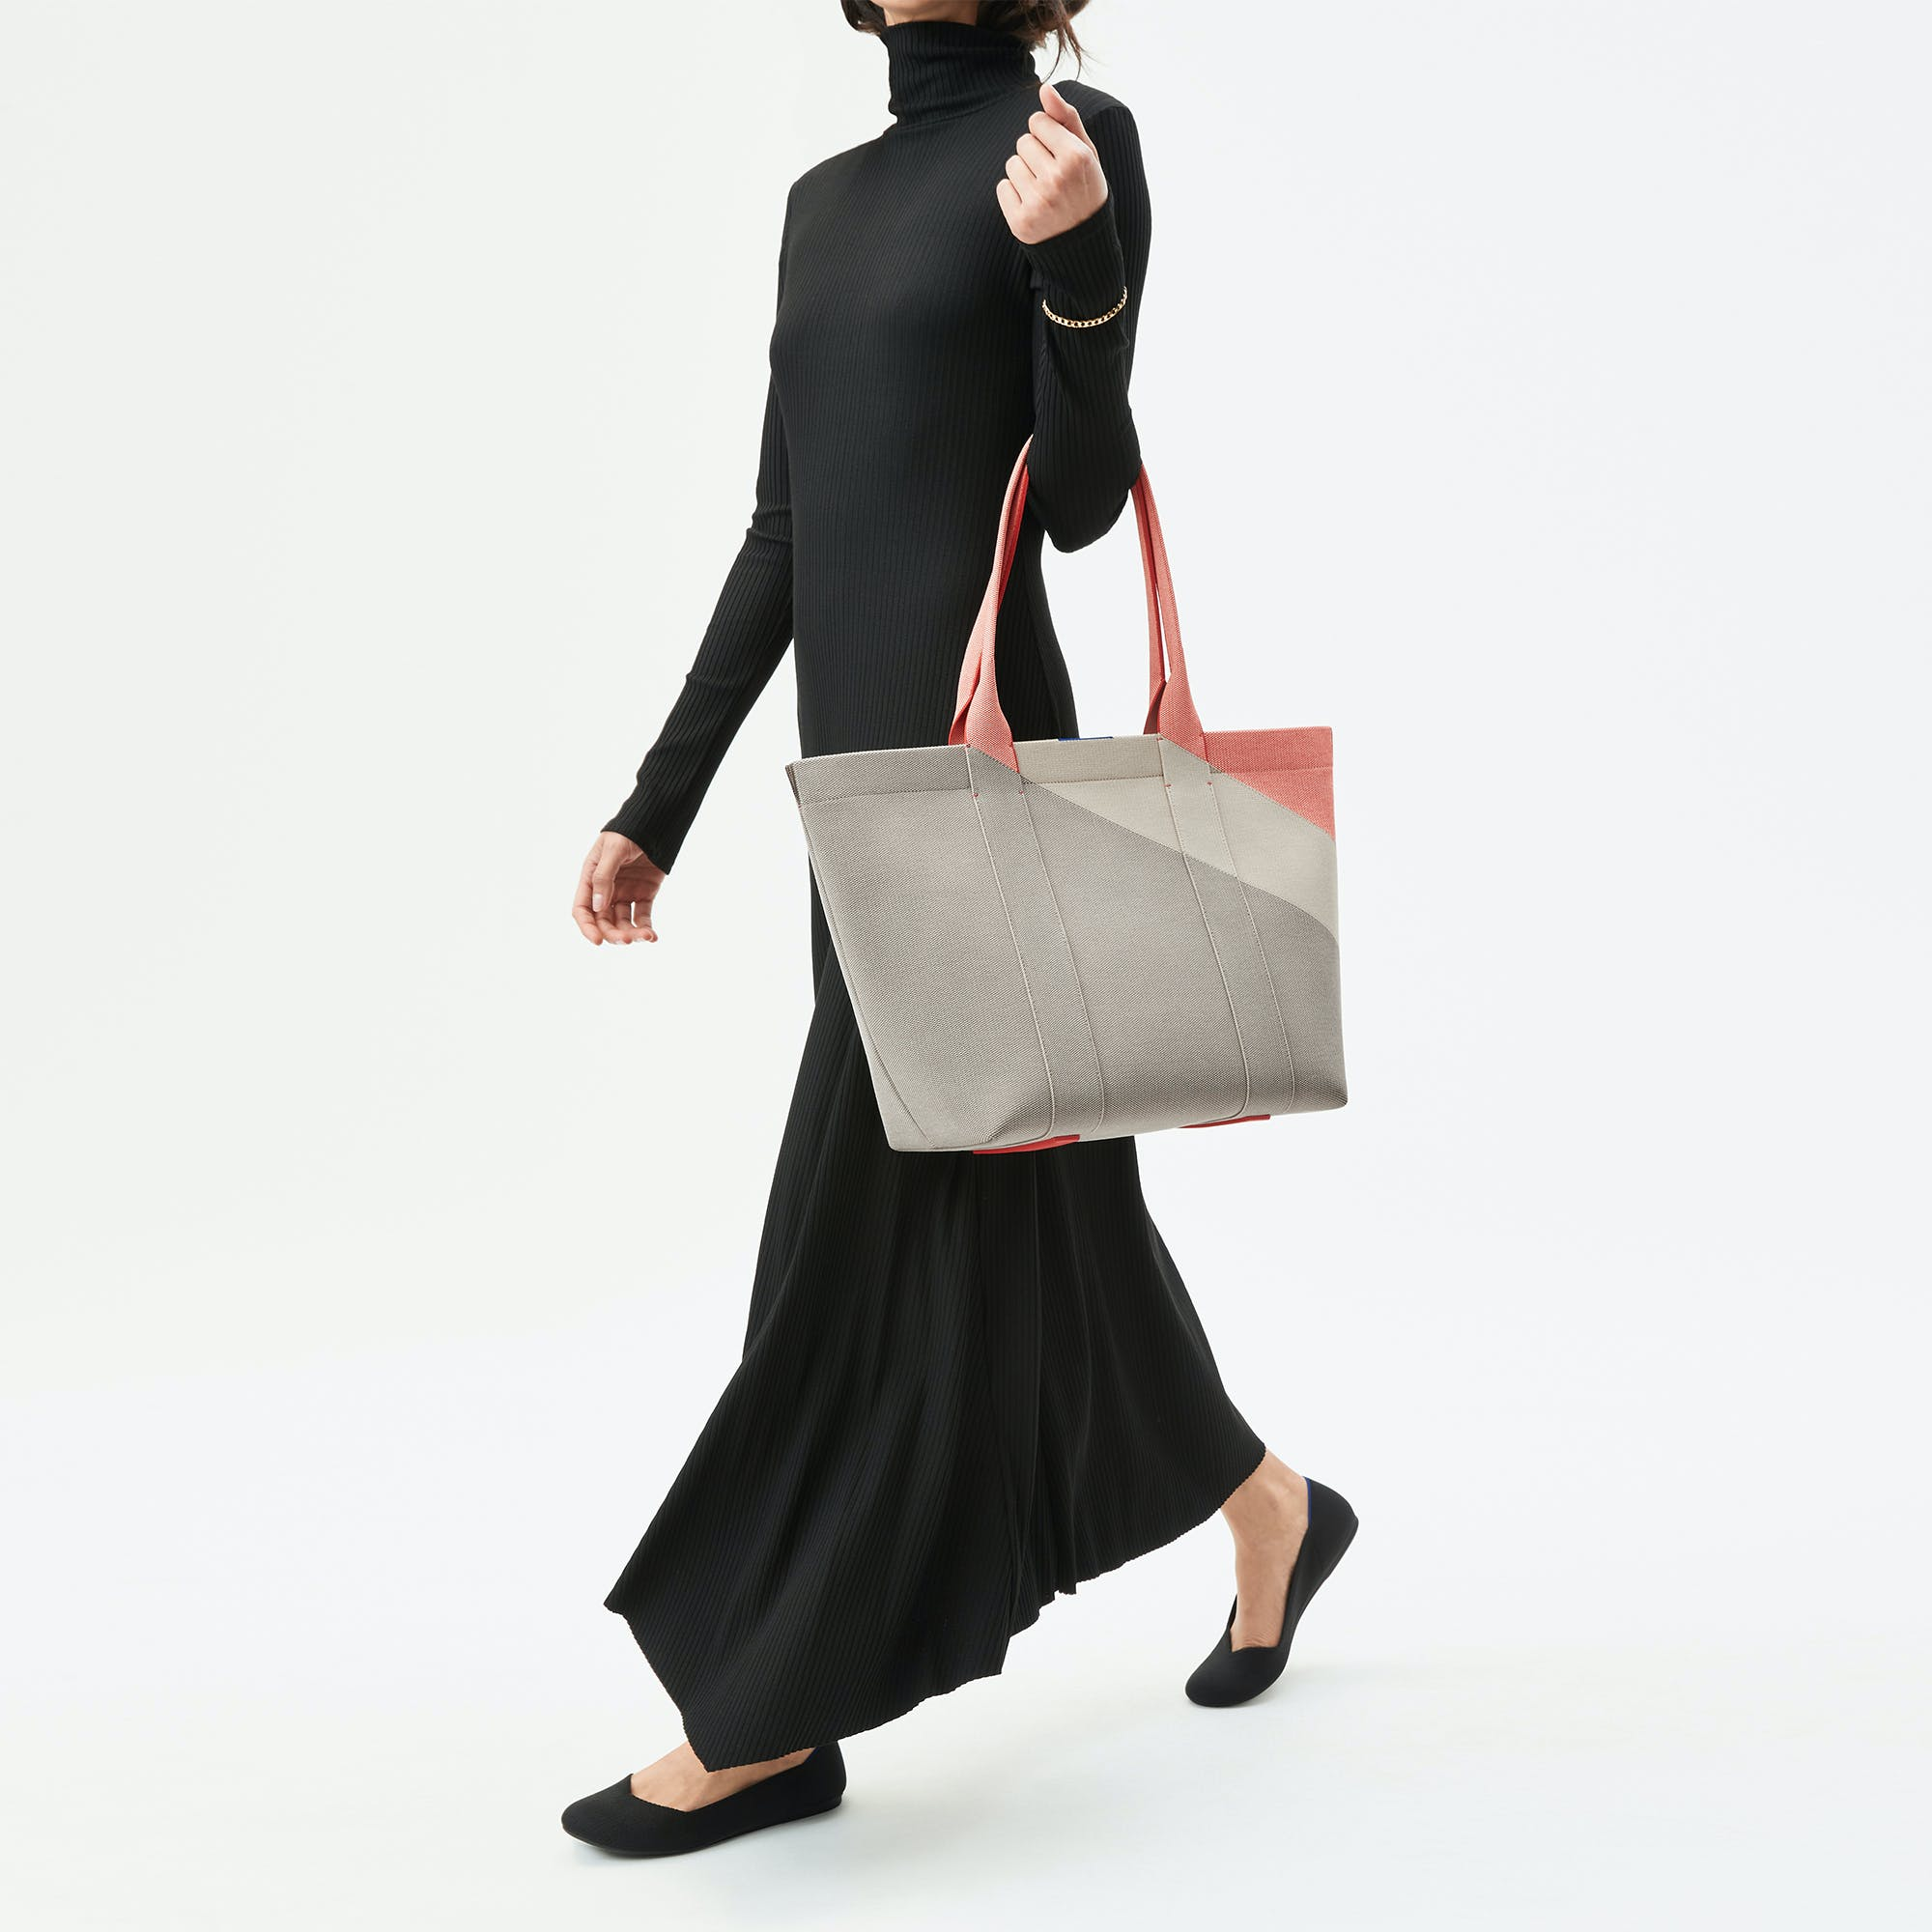 The Essential Tote in Desert Sand shown from the front.